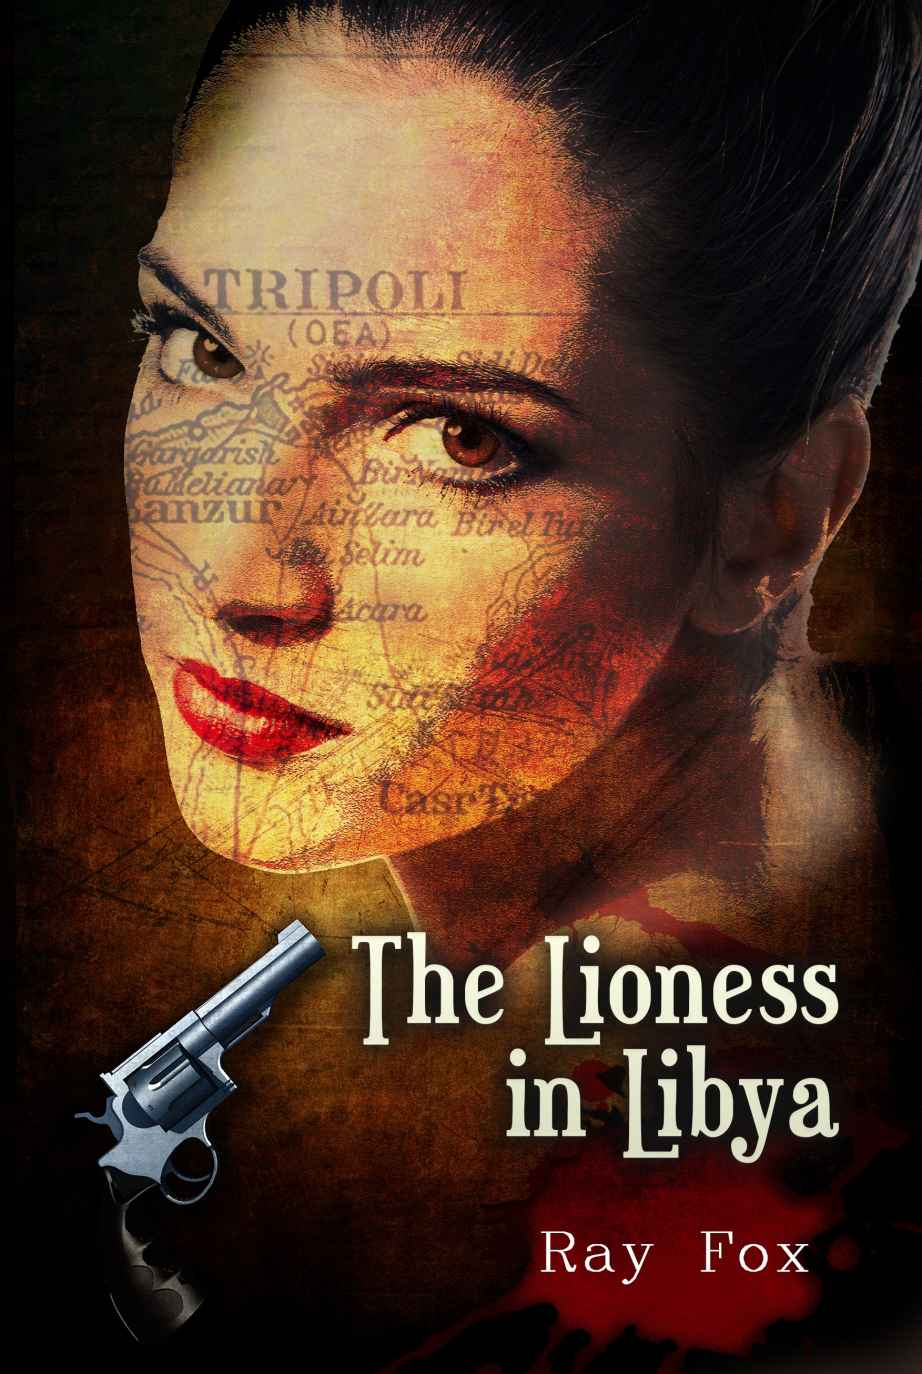 The Lioness in Libya